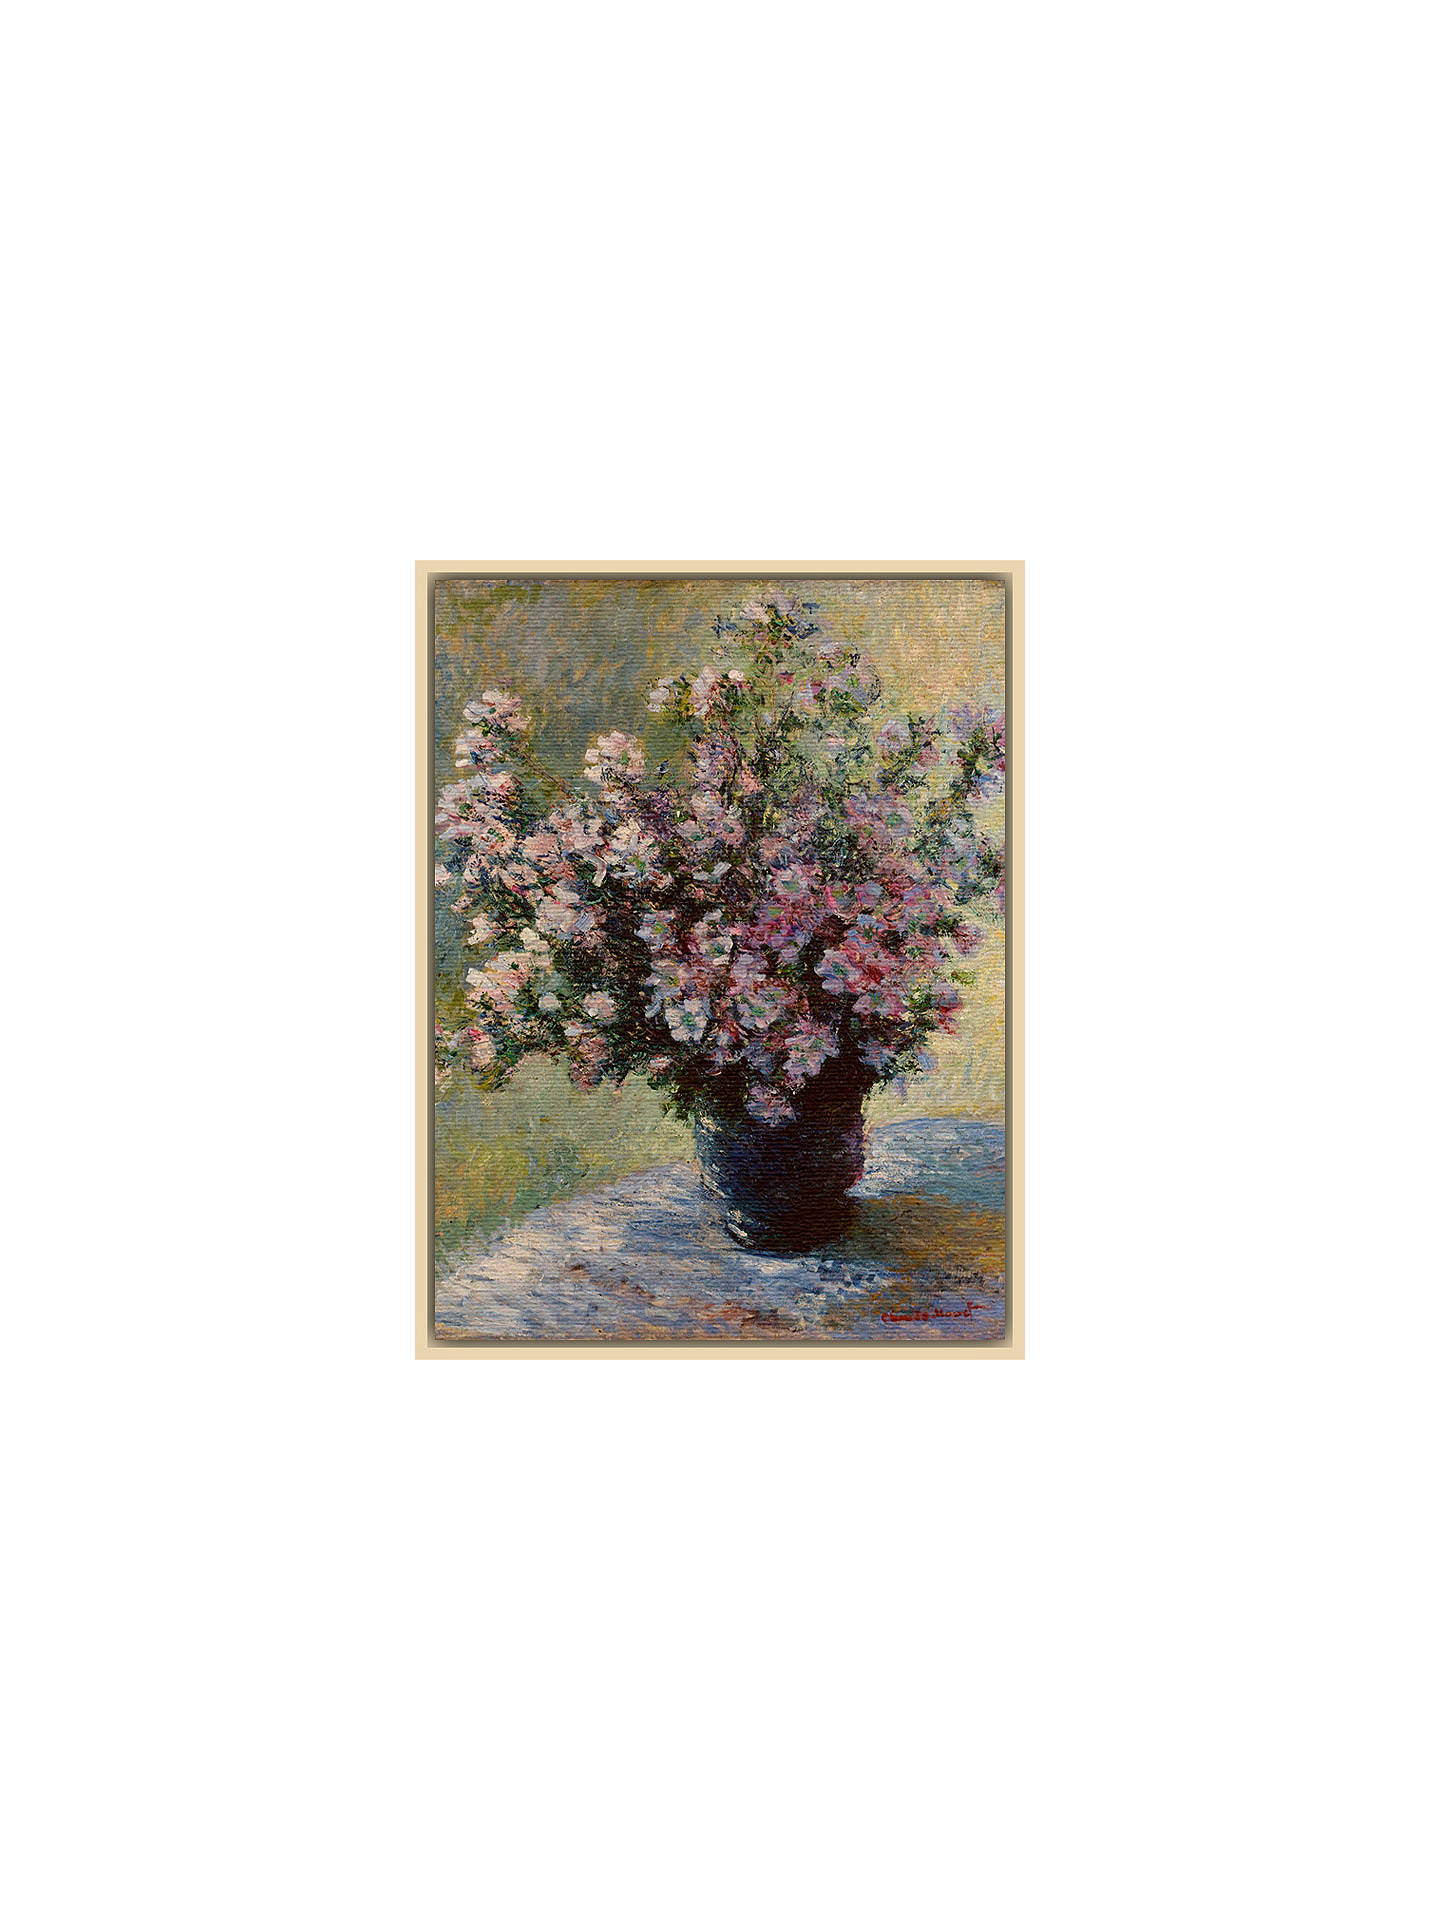 BuyThe Courtauld Gallery, Claude Monet - Vase of flowers 1881-2 Print, Natural Ash Framed Canvas, 80 x 60cm Online at johnlewis.com